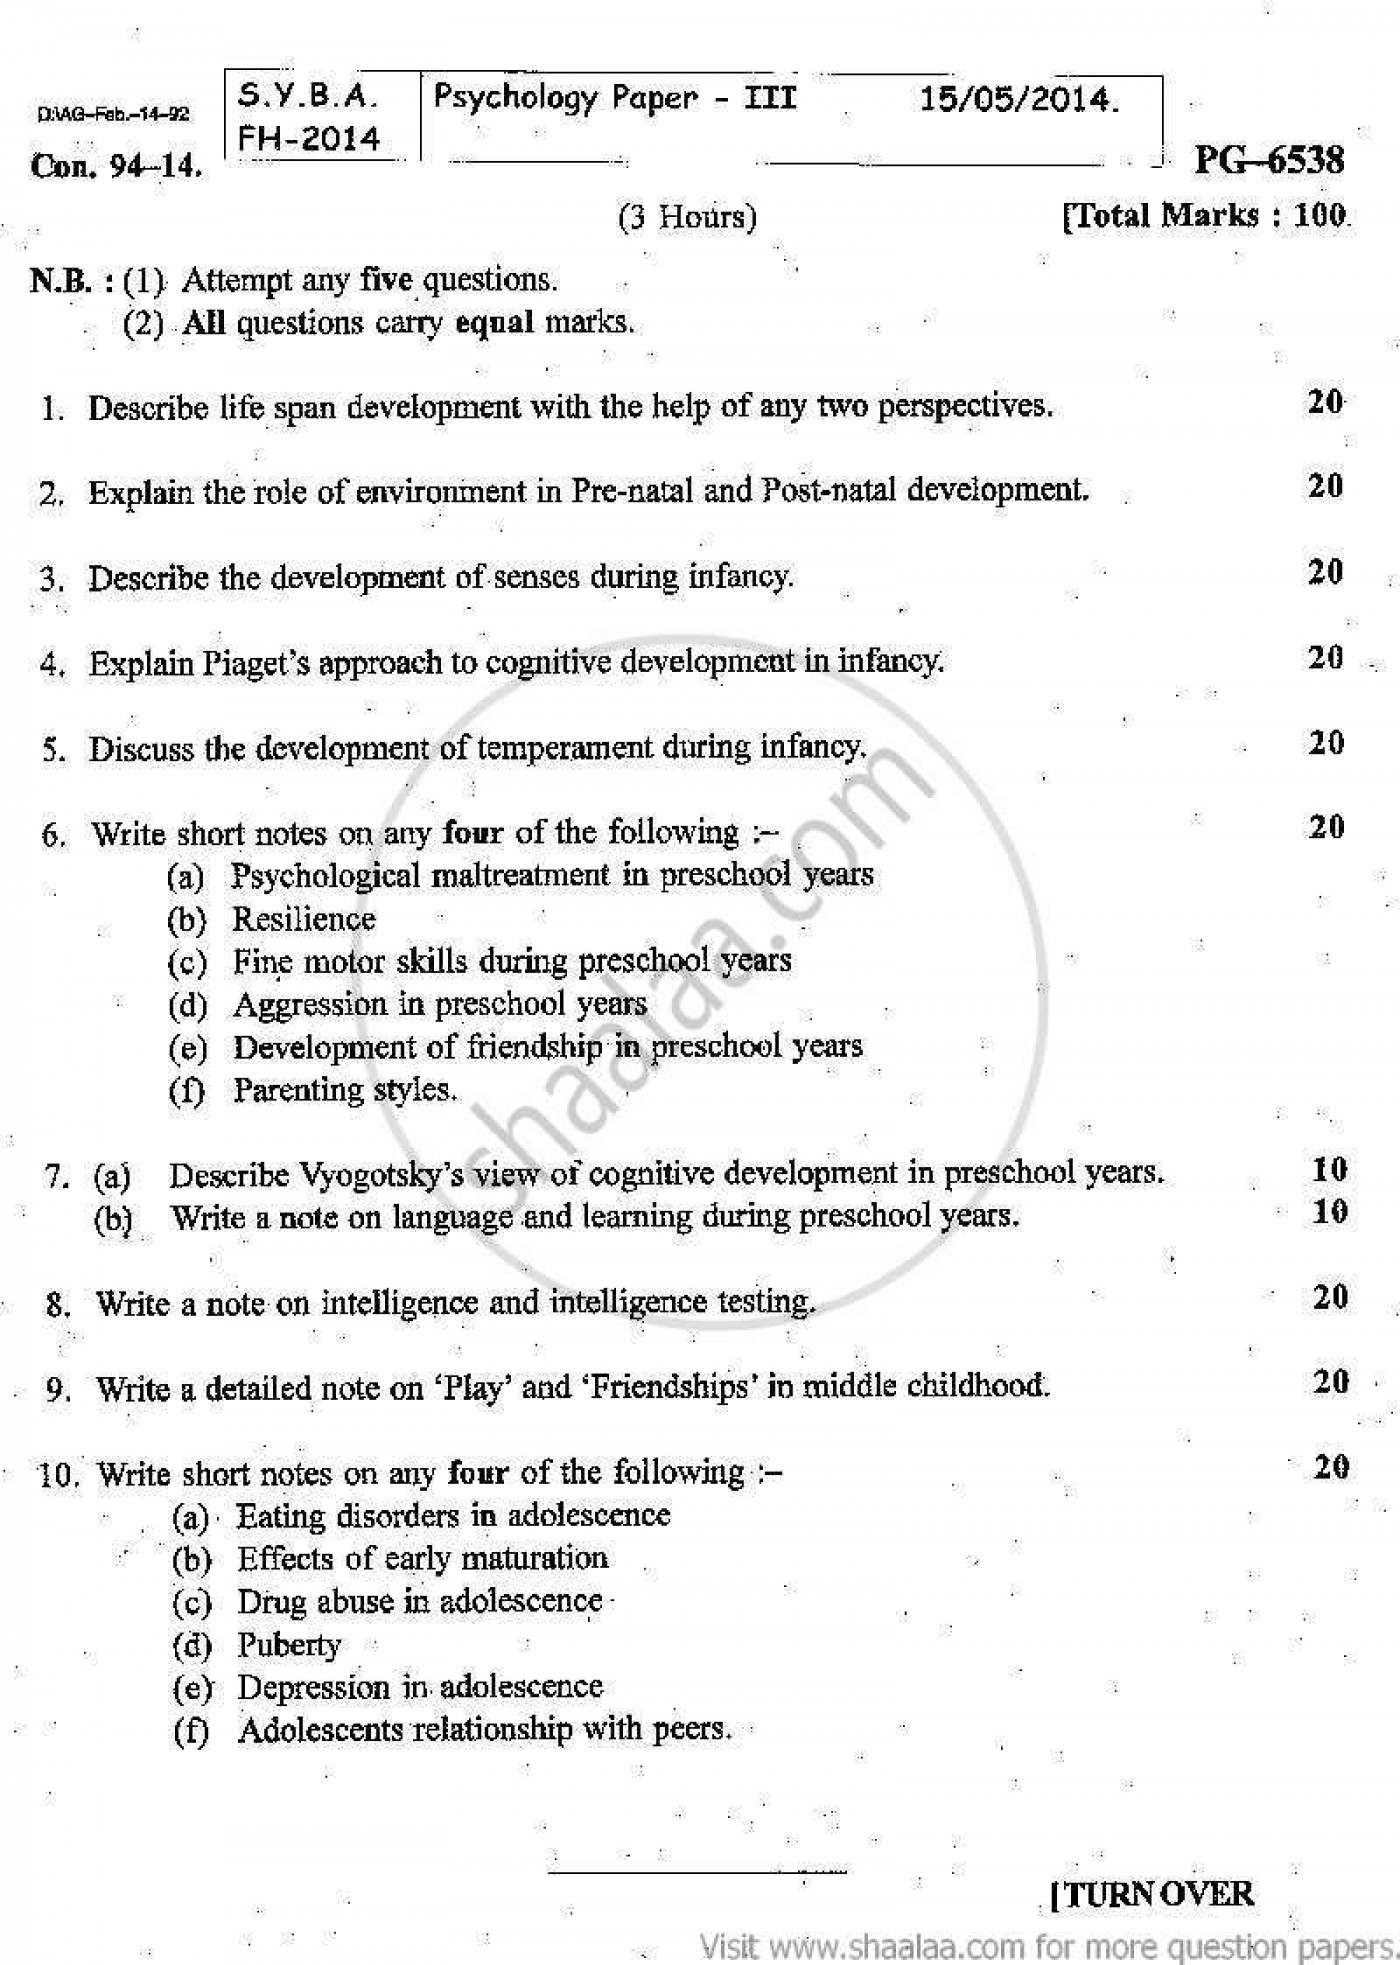 007 Developmental Psychology Essay Gender Bias Help Papers Atsl Ip Writing Service Topics Research Child Paper Rare Depression 1400